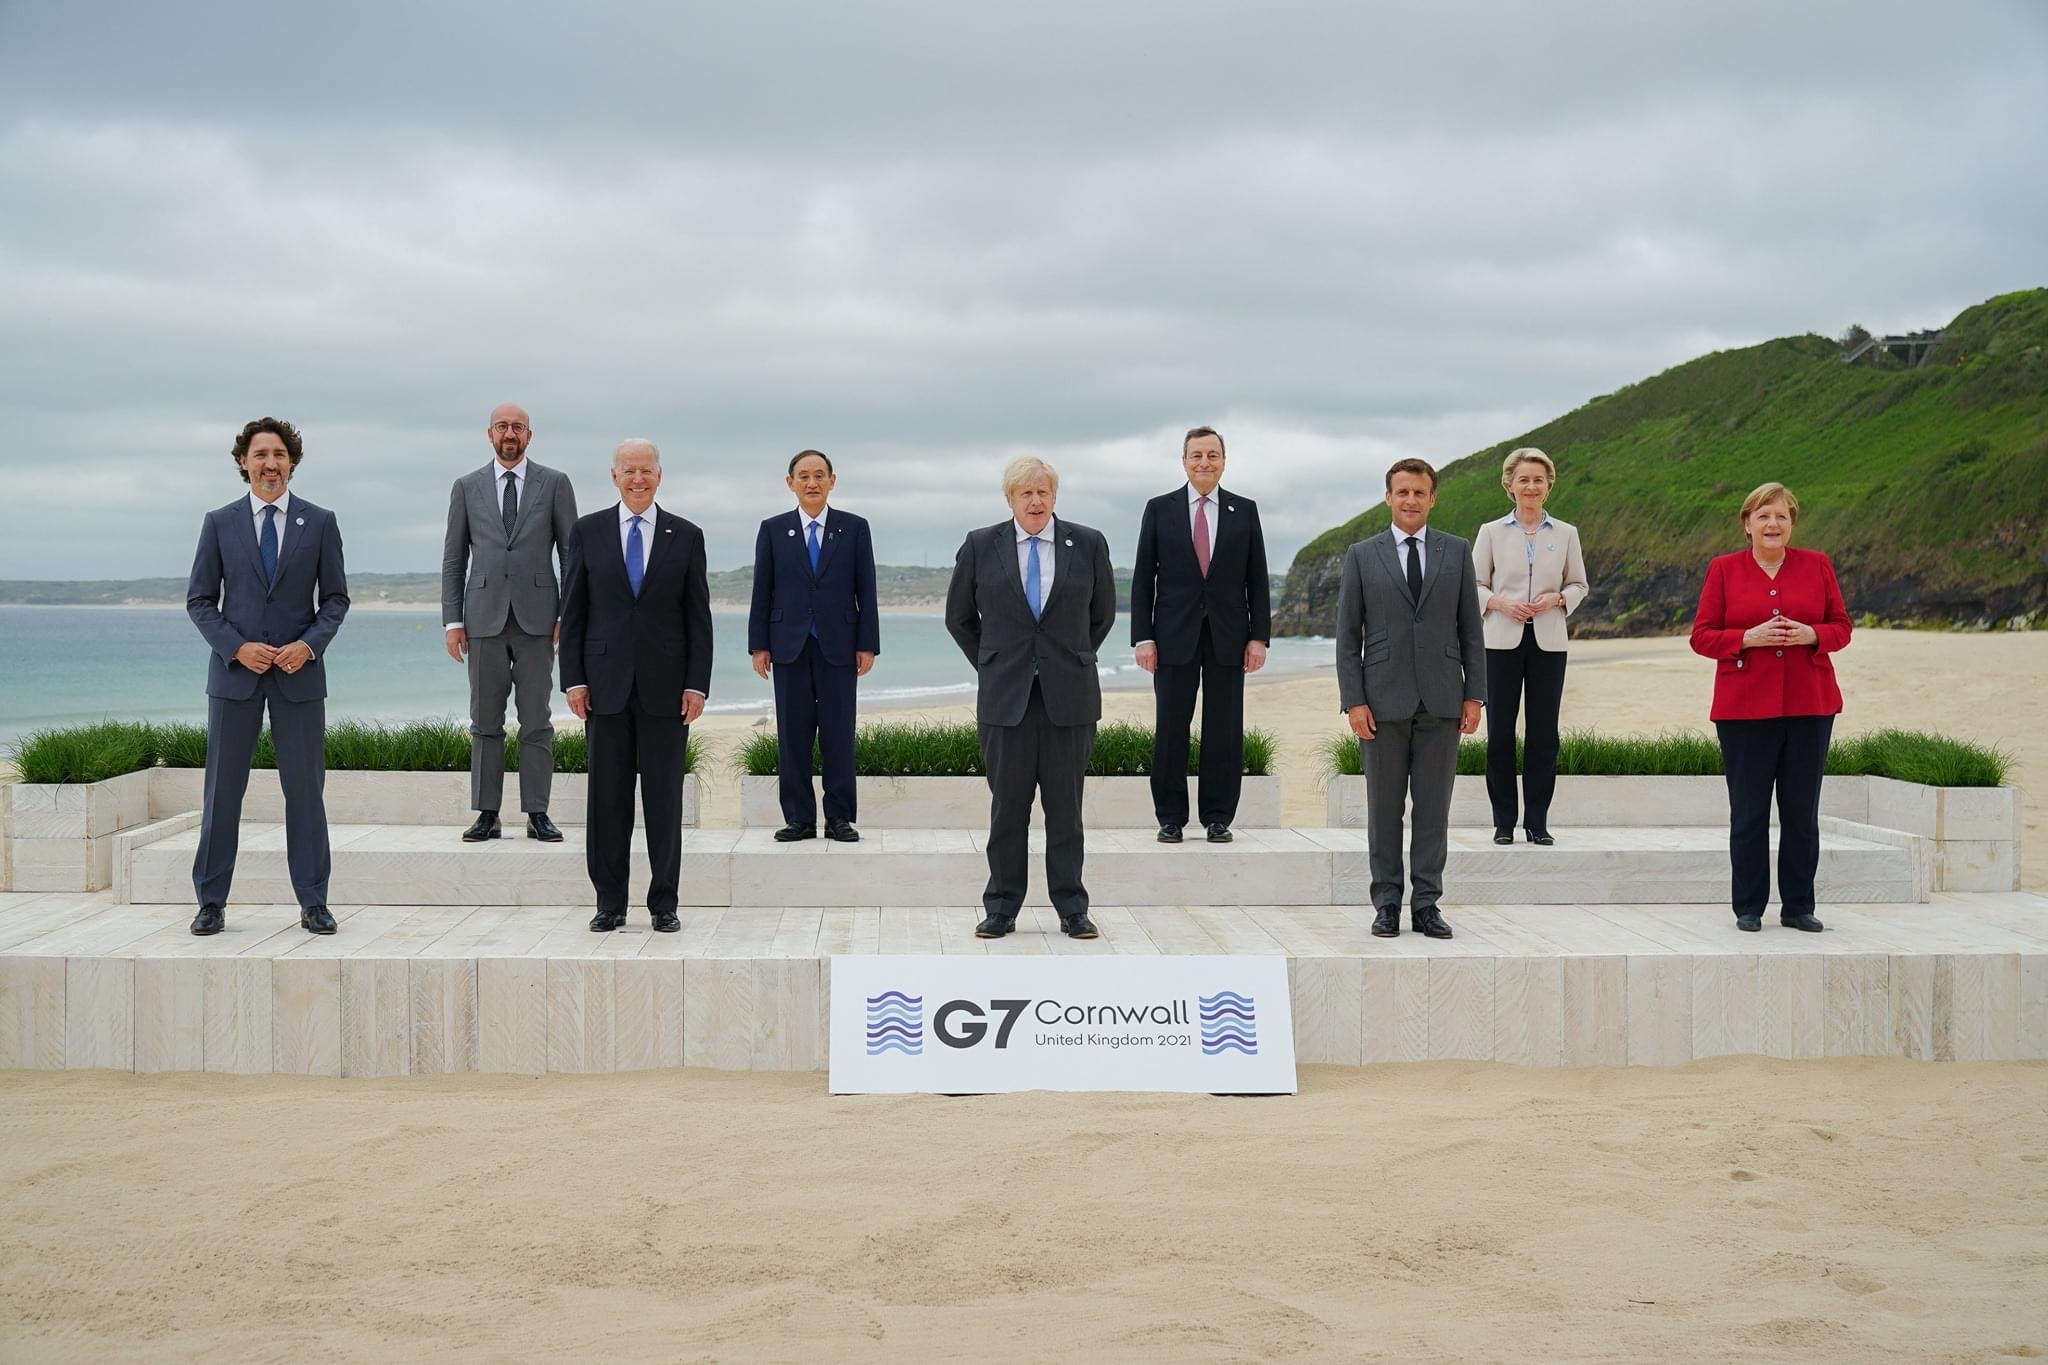 G7 Issues Life Like Action Figure Series